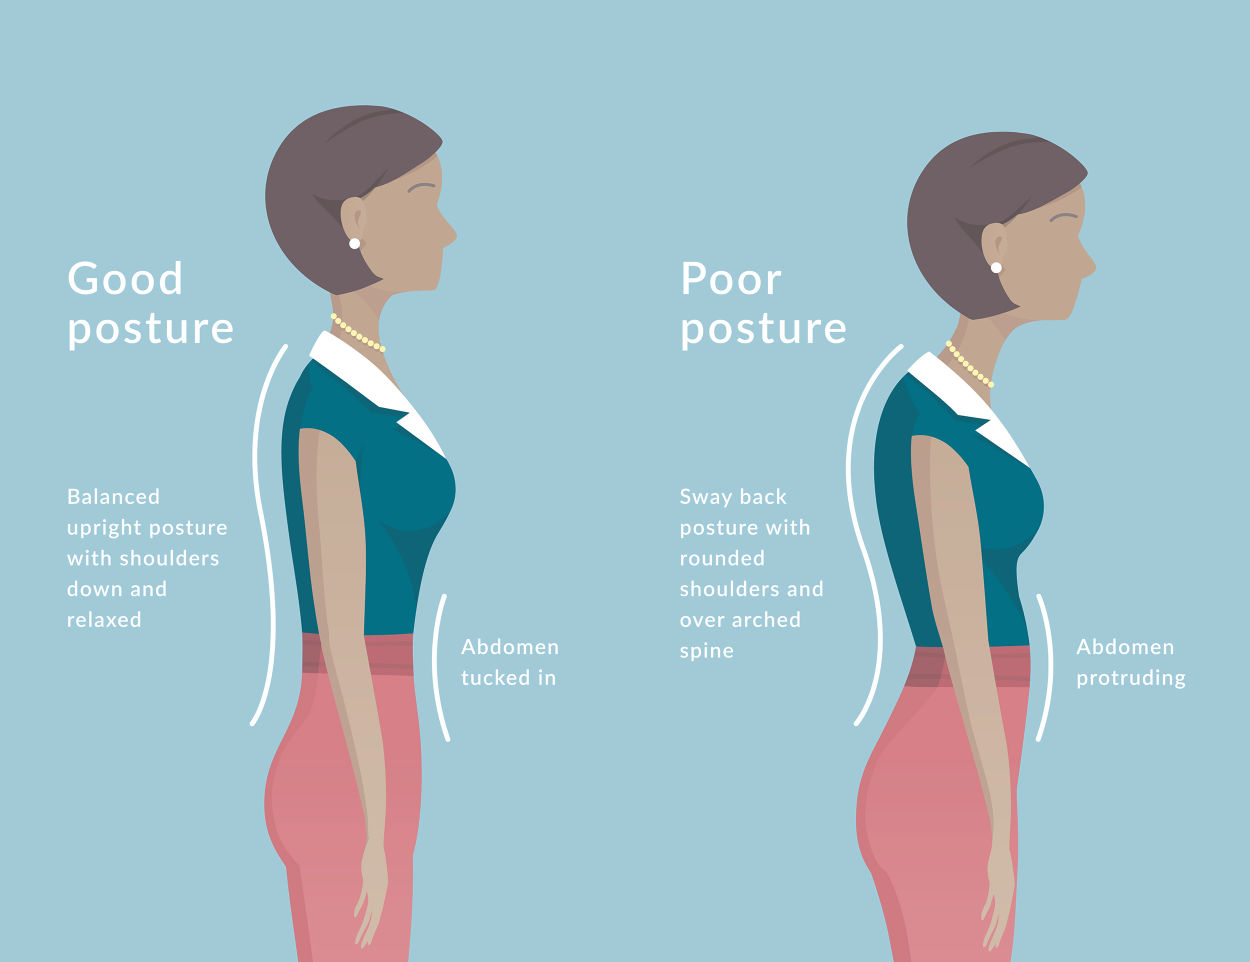 How To Get Great Posture advise